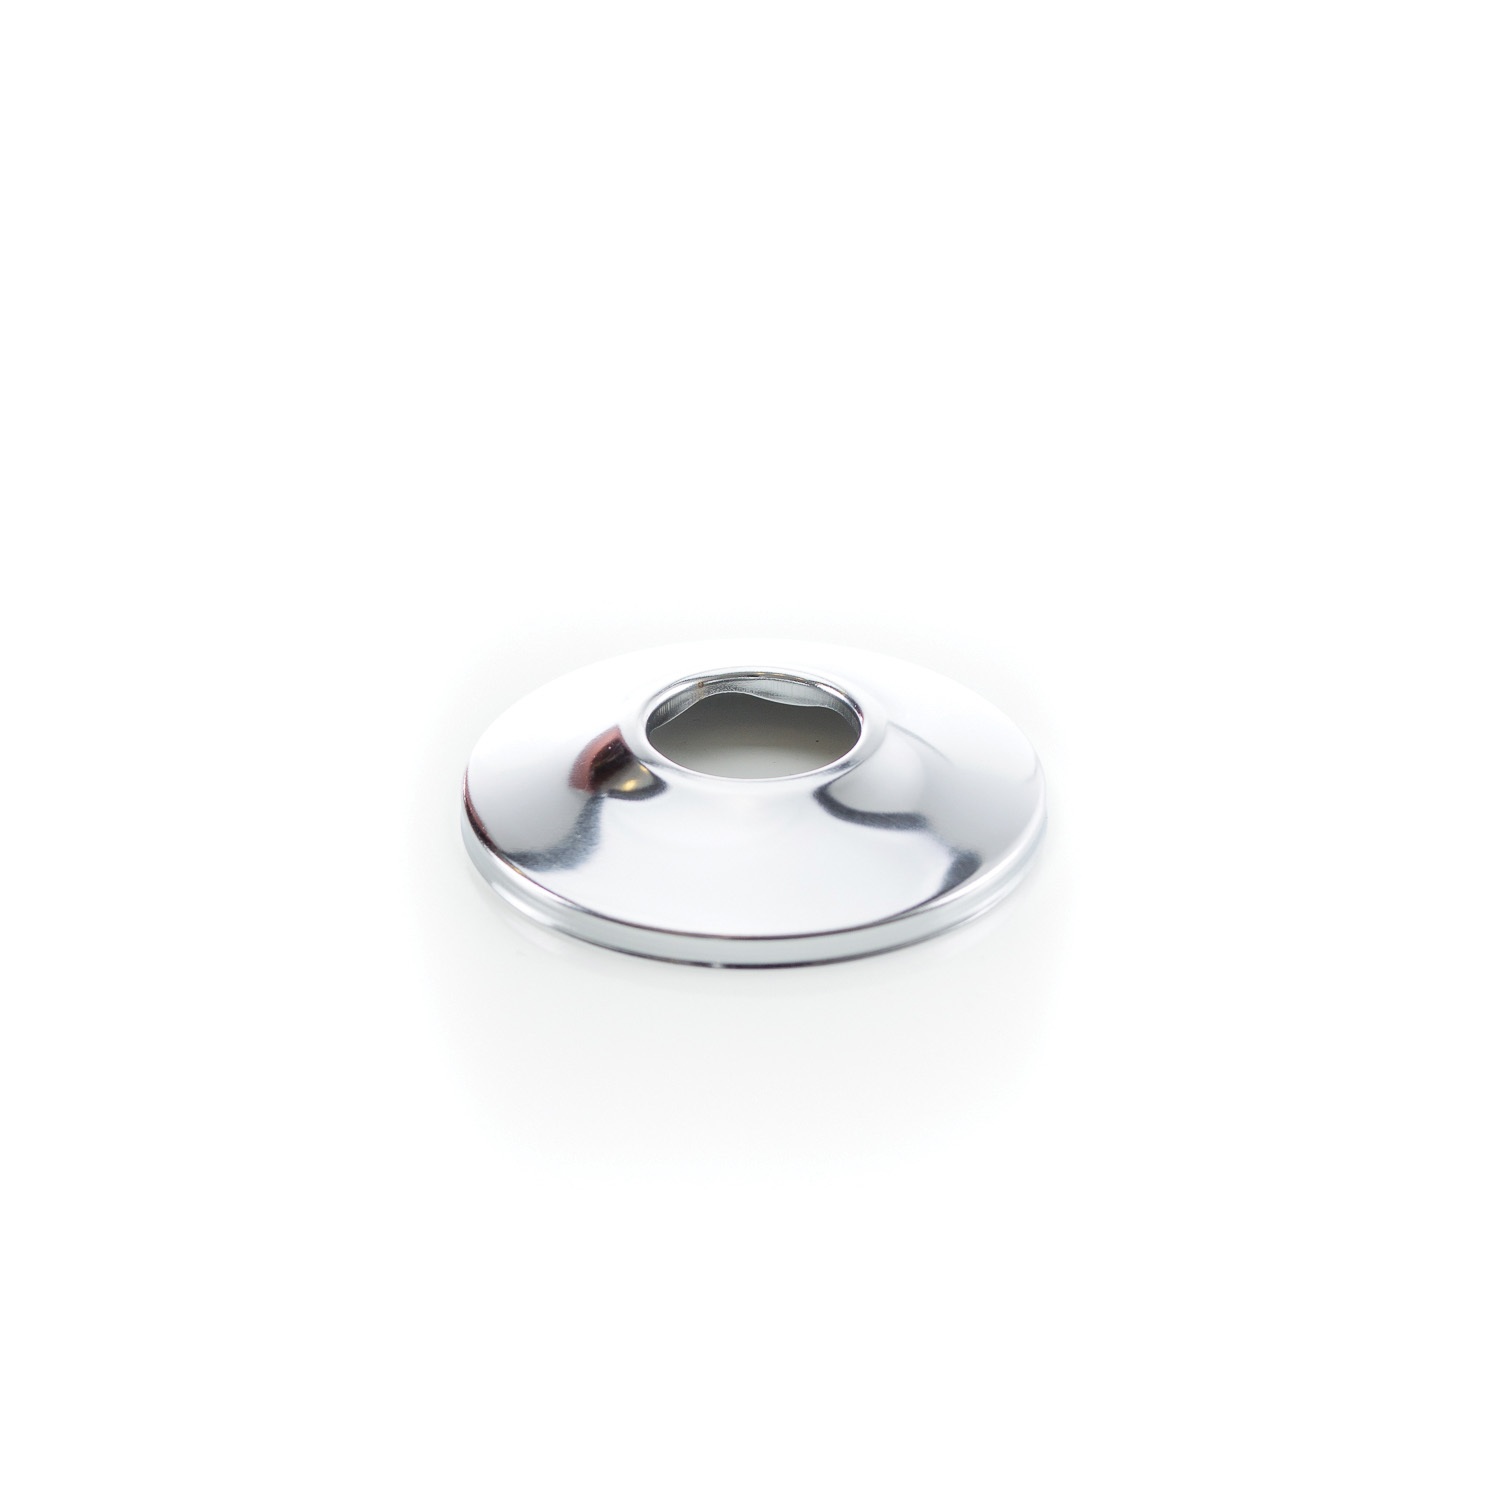 PASCO Sure Grip 1230 Flange, 1/2 in CWT, Steel, Polished Chrome